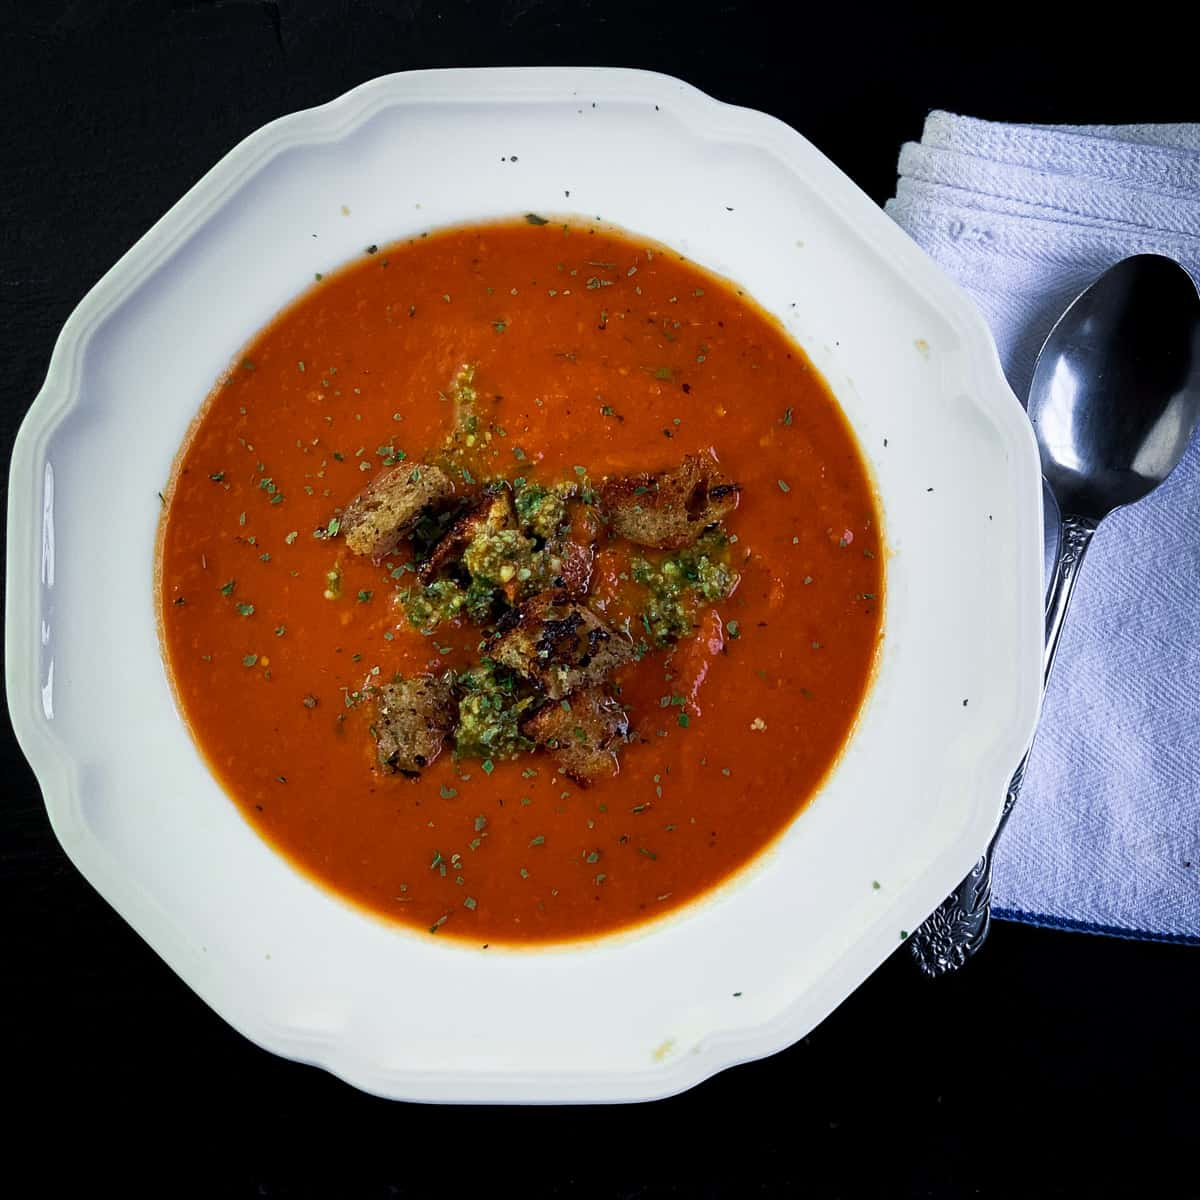 Top view of tomato soup in white bowl with spoon and white napkin